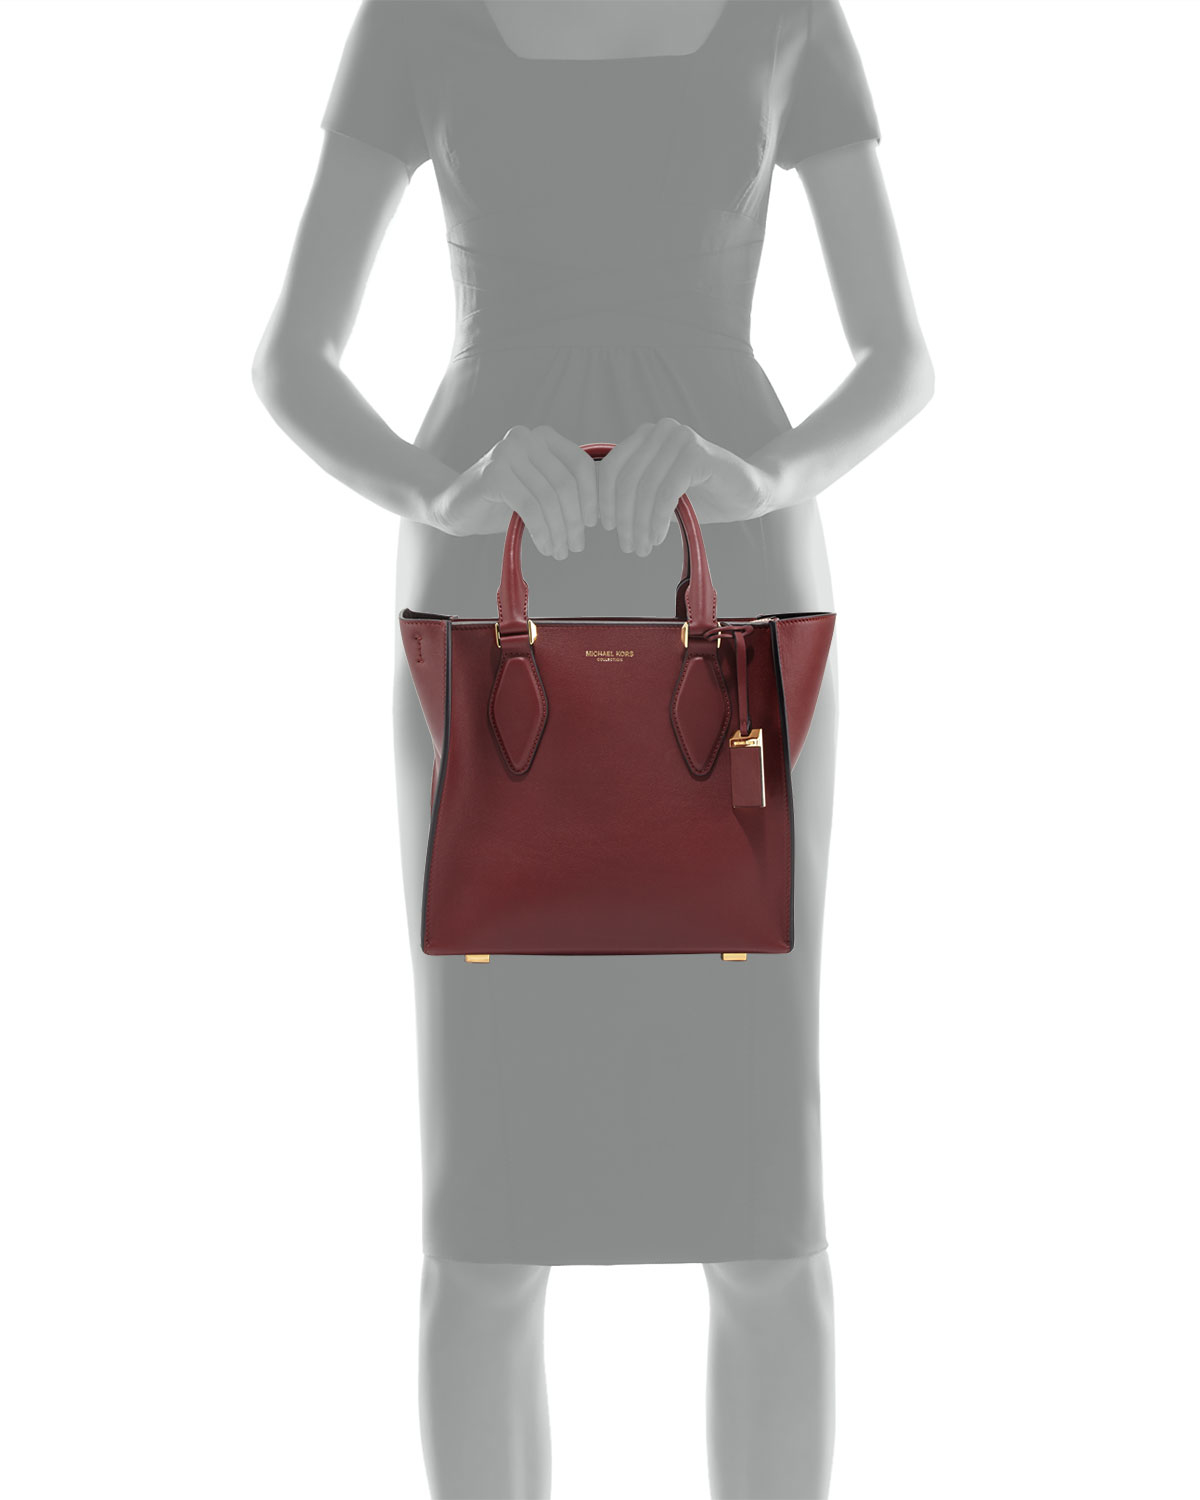 a69985902bf3 Michael Kors Gracie Medium Tote Bag in Red - Lyst